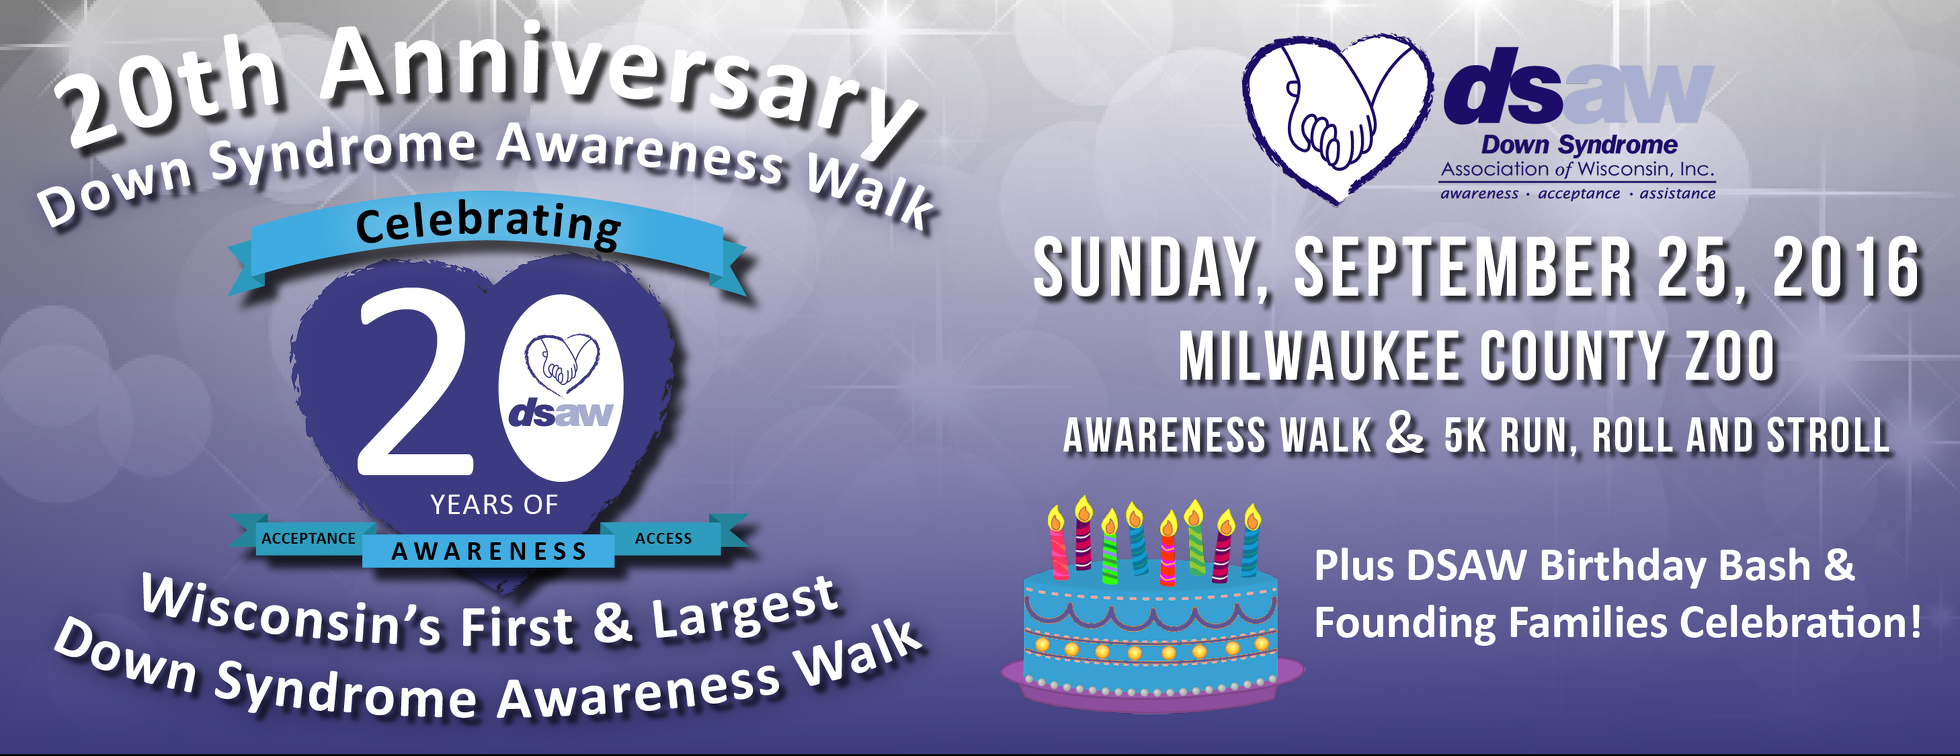 20th Anniversary Statewide Down Syndrome Awareness Walk & 5K Run, Roll & Stroll